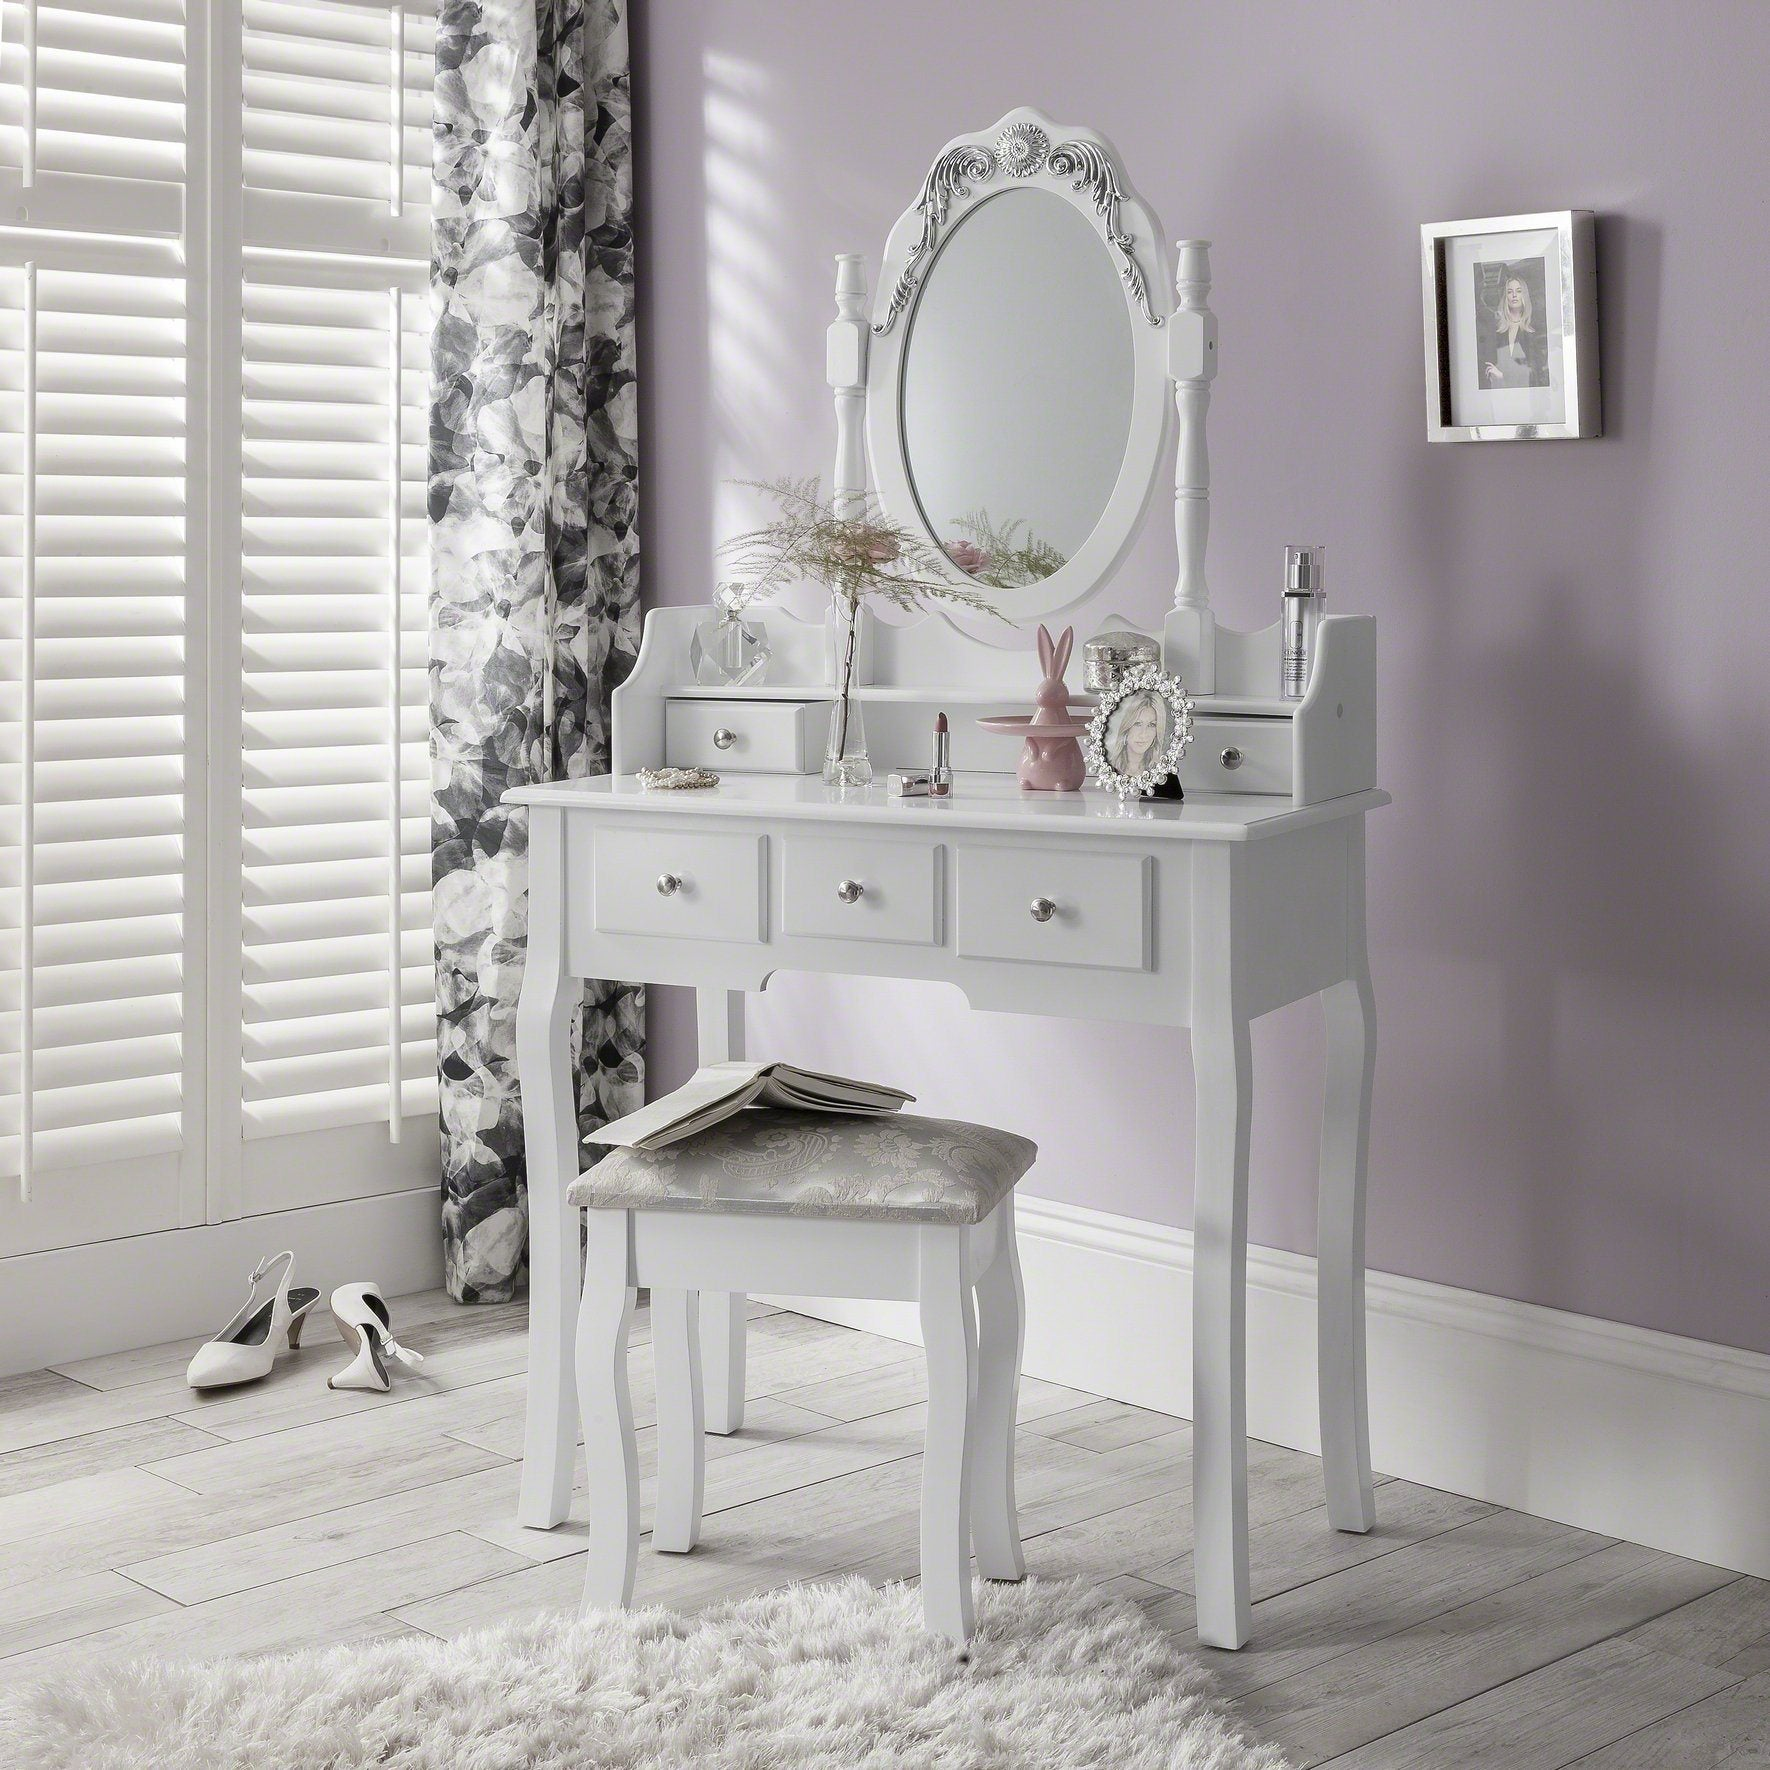 Capri White Dressing Table, Stool & Mirror Set - In Stock Date - 26th May 2020 - Laura James